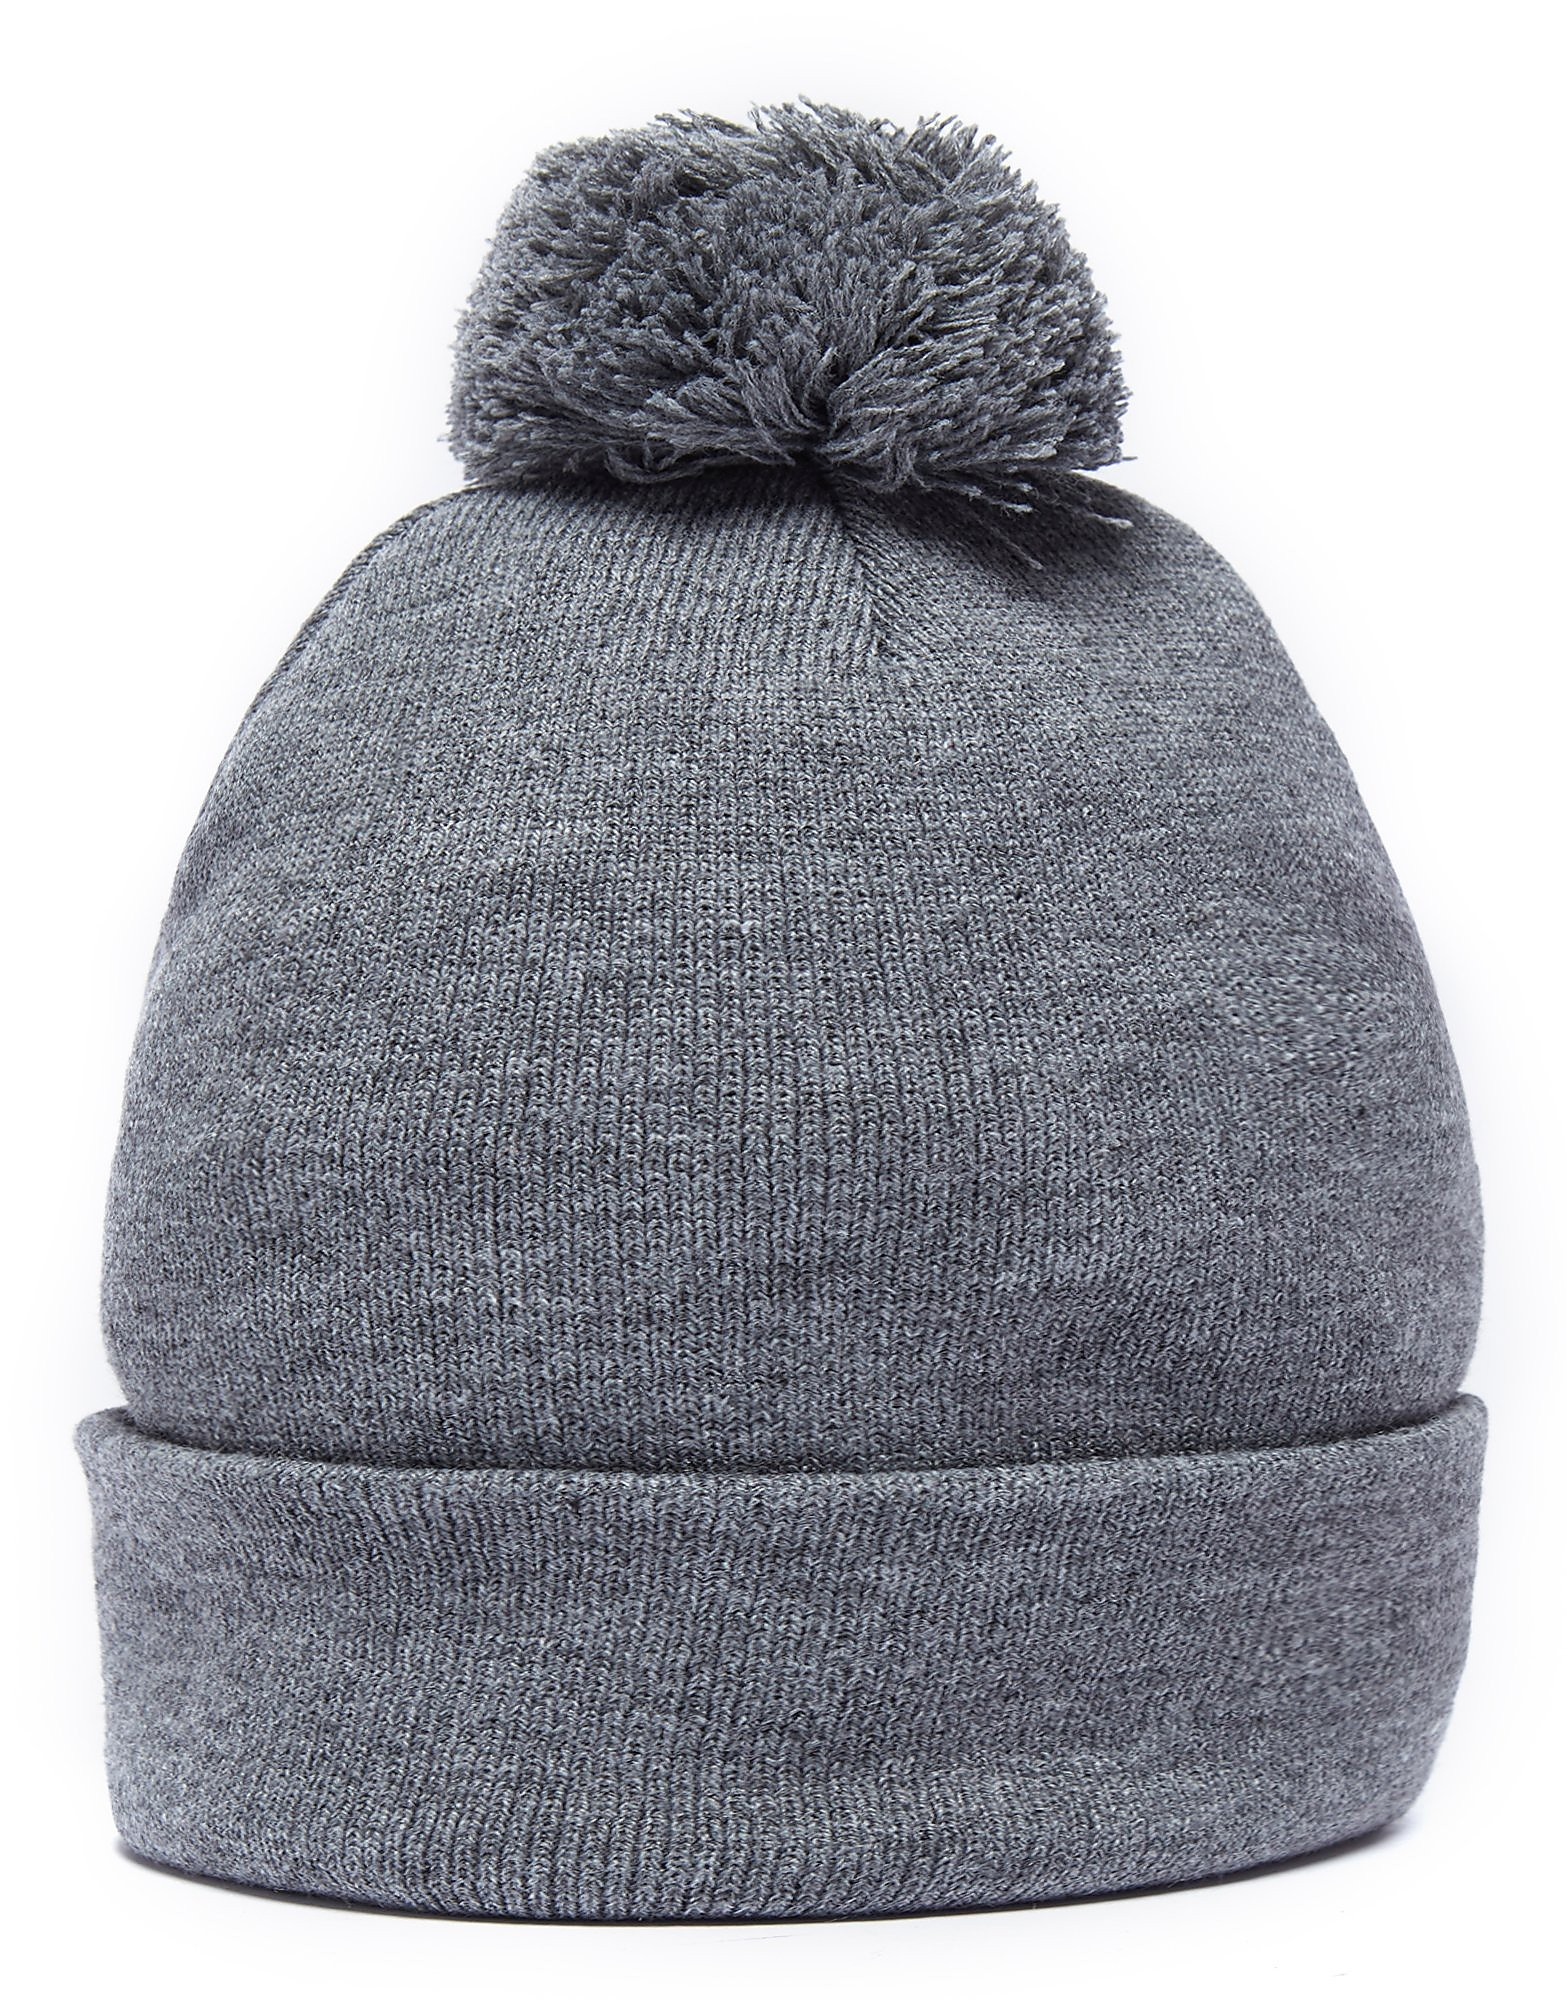 Ellesse Patch Pom Pom Beanie Hat